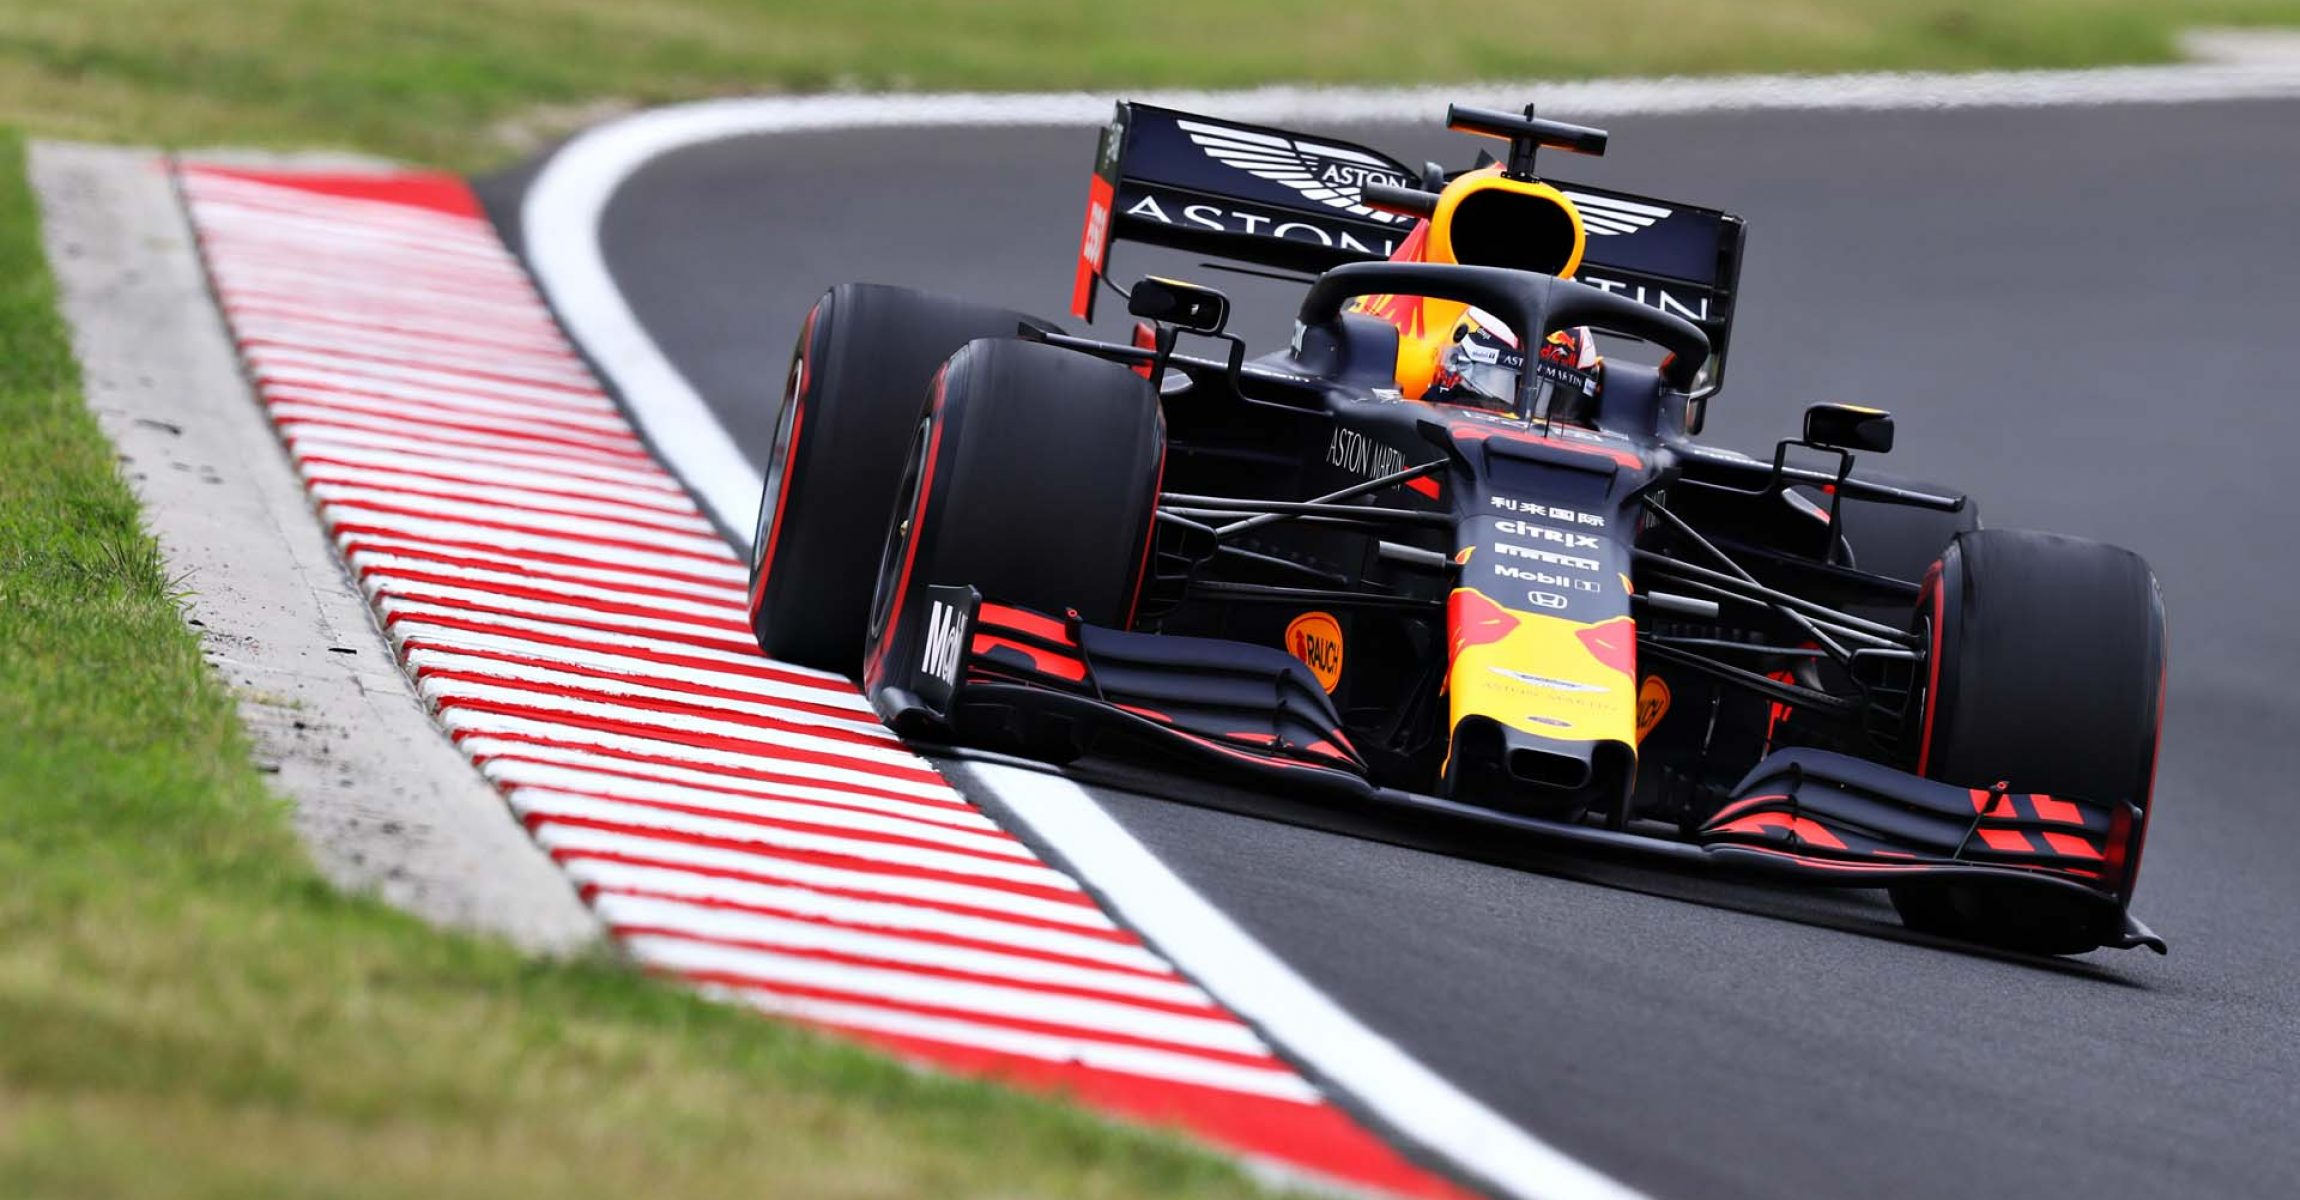 BUDAPEST, HUNGARY - AUGUST 02: Max Verstappen of the Netherlands driving the (33) Aston Martin Red Bull Racing RB15 on track during practice for the F1 Grand Prix of Hungary at Hungaroring on August 02, 2019 in Budapest, Hungary. (Photo by Mark Thompson/Getty Images) // Getty Images / Red Bull Content Pool  // AP-214V2DCFS1W11 // Usage for editorial use only // Please go to www.redbullcontentpool.com for further information. //